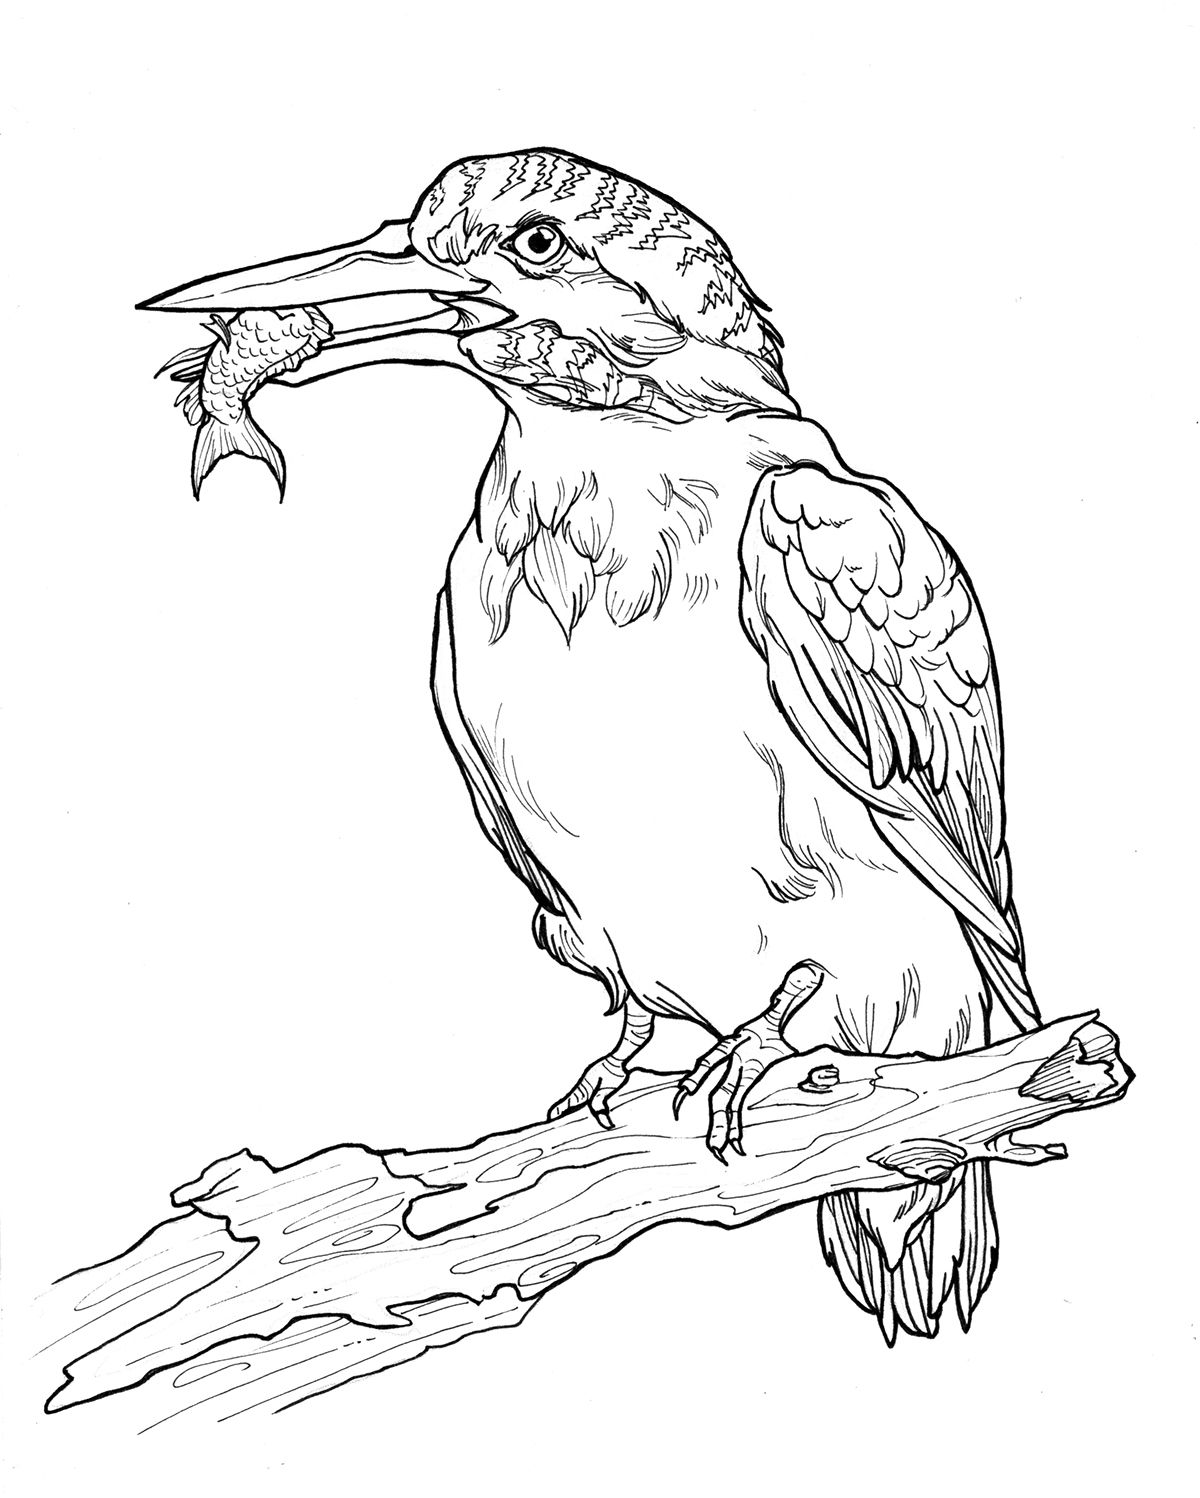 A Selection Of My Illustrations For Geneva Wilsons Bahamas Birds Coloring Book Which Features 38